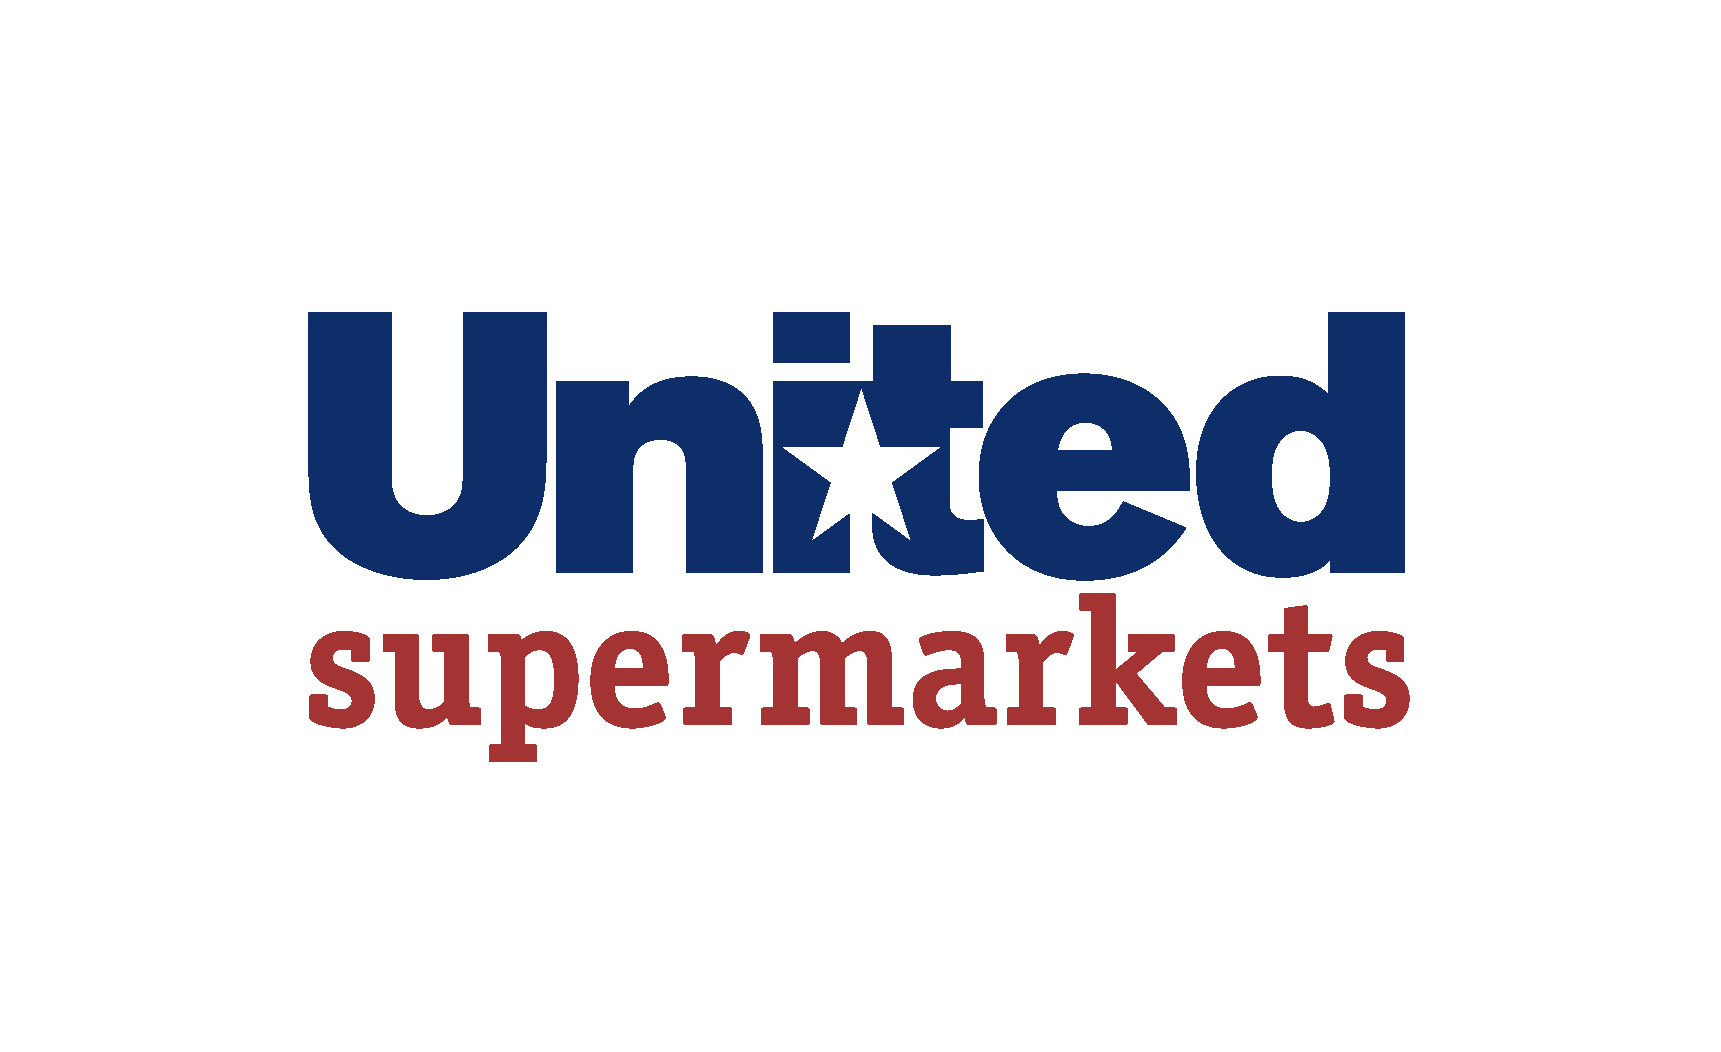 UnitedSupermarkets_large_id_final_color.jpg